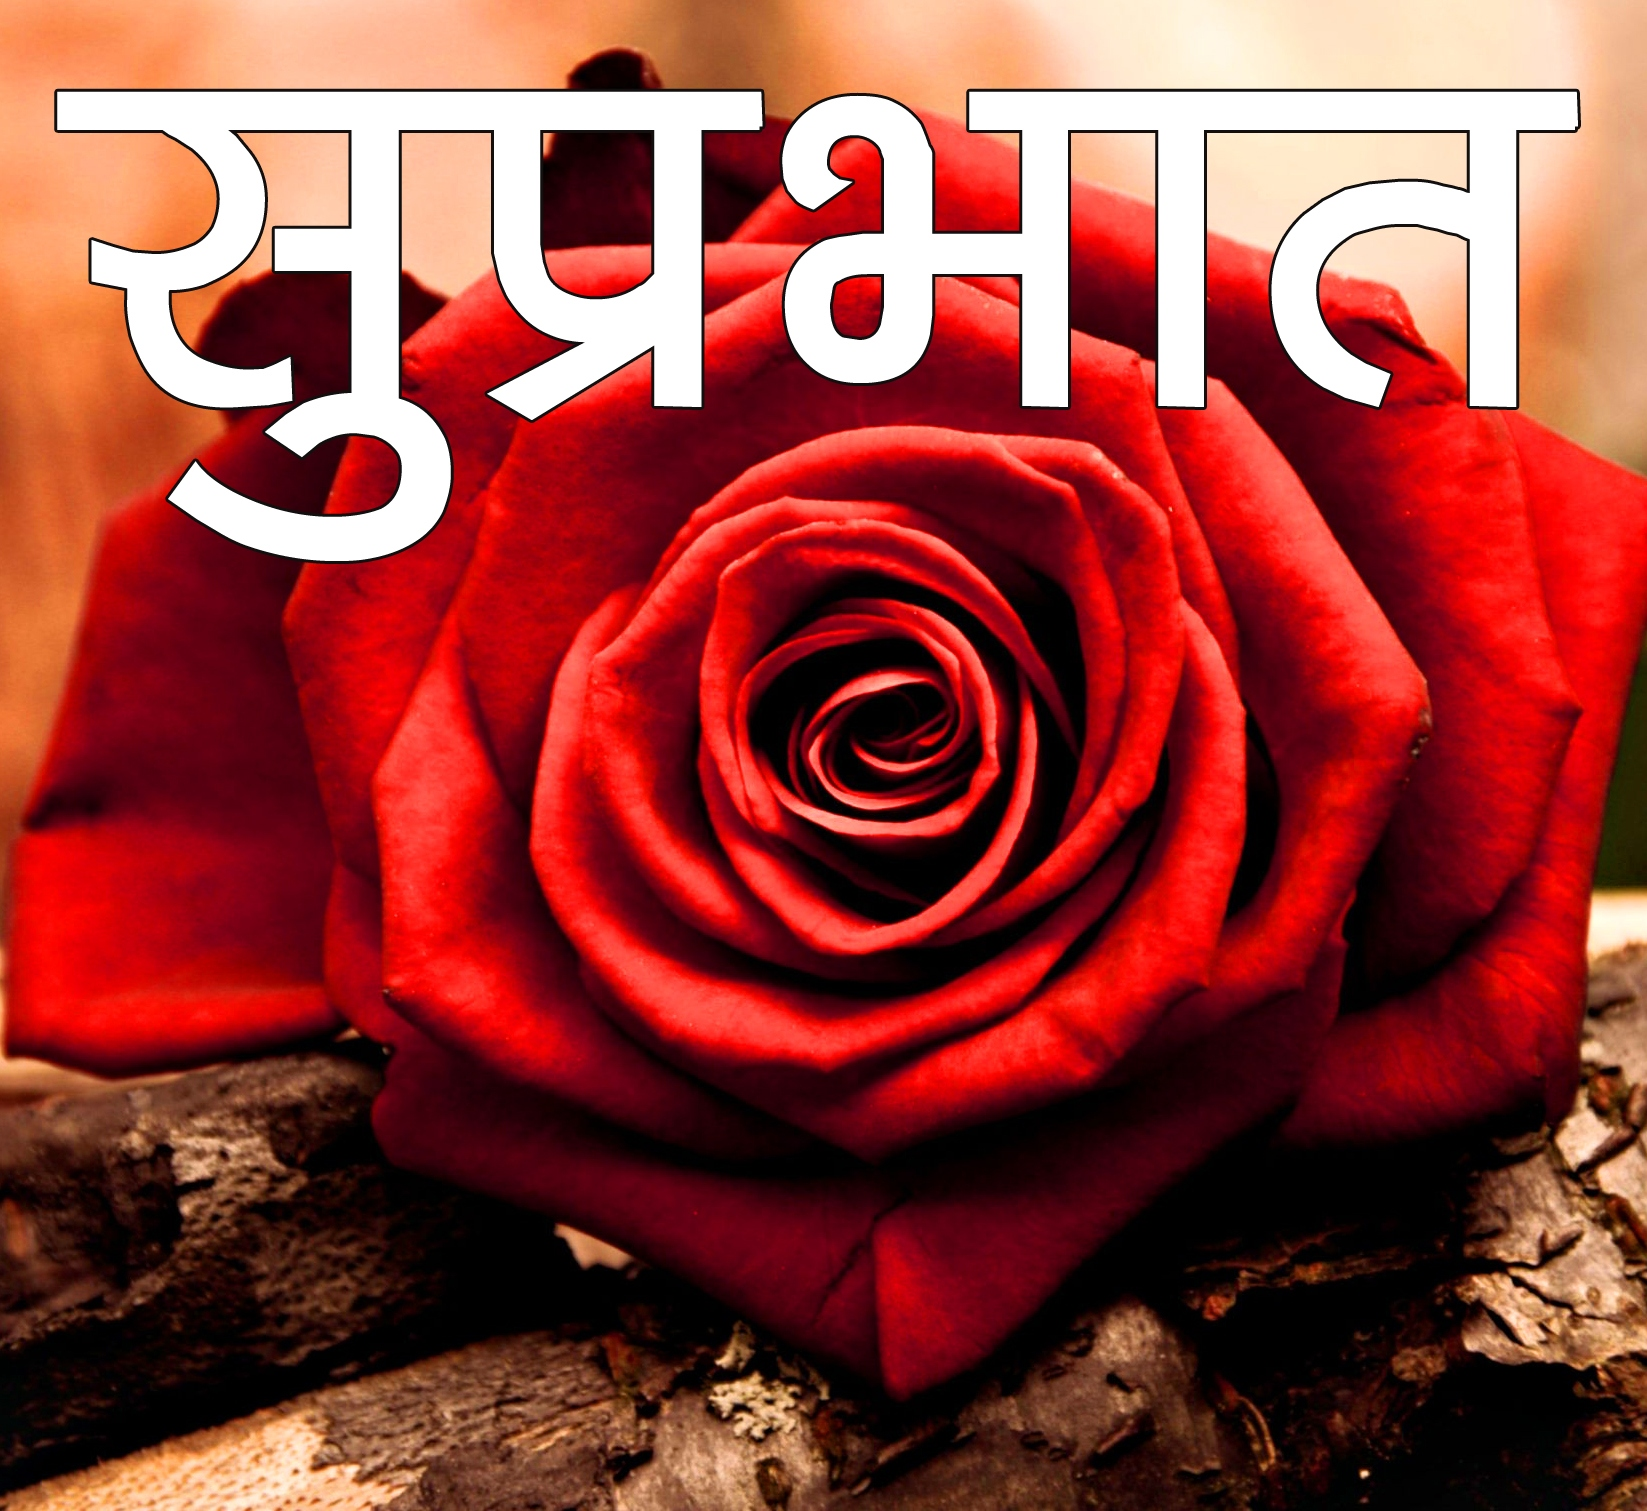 Red Rose Suprabhat Images 18 1